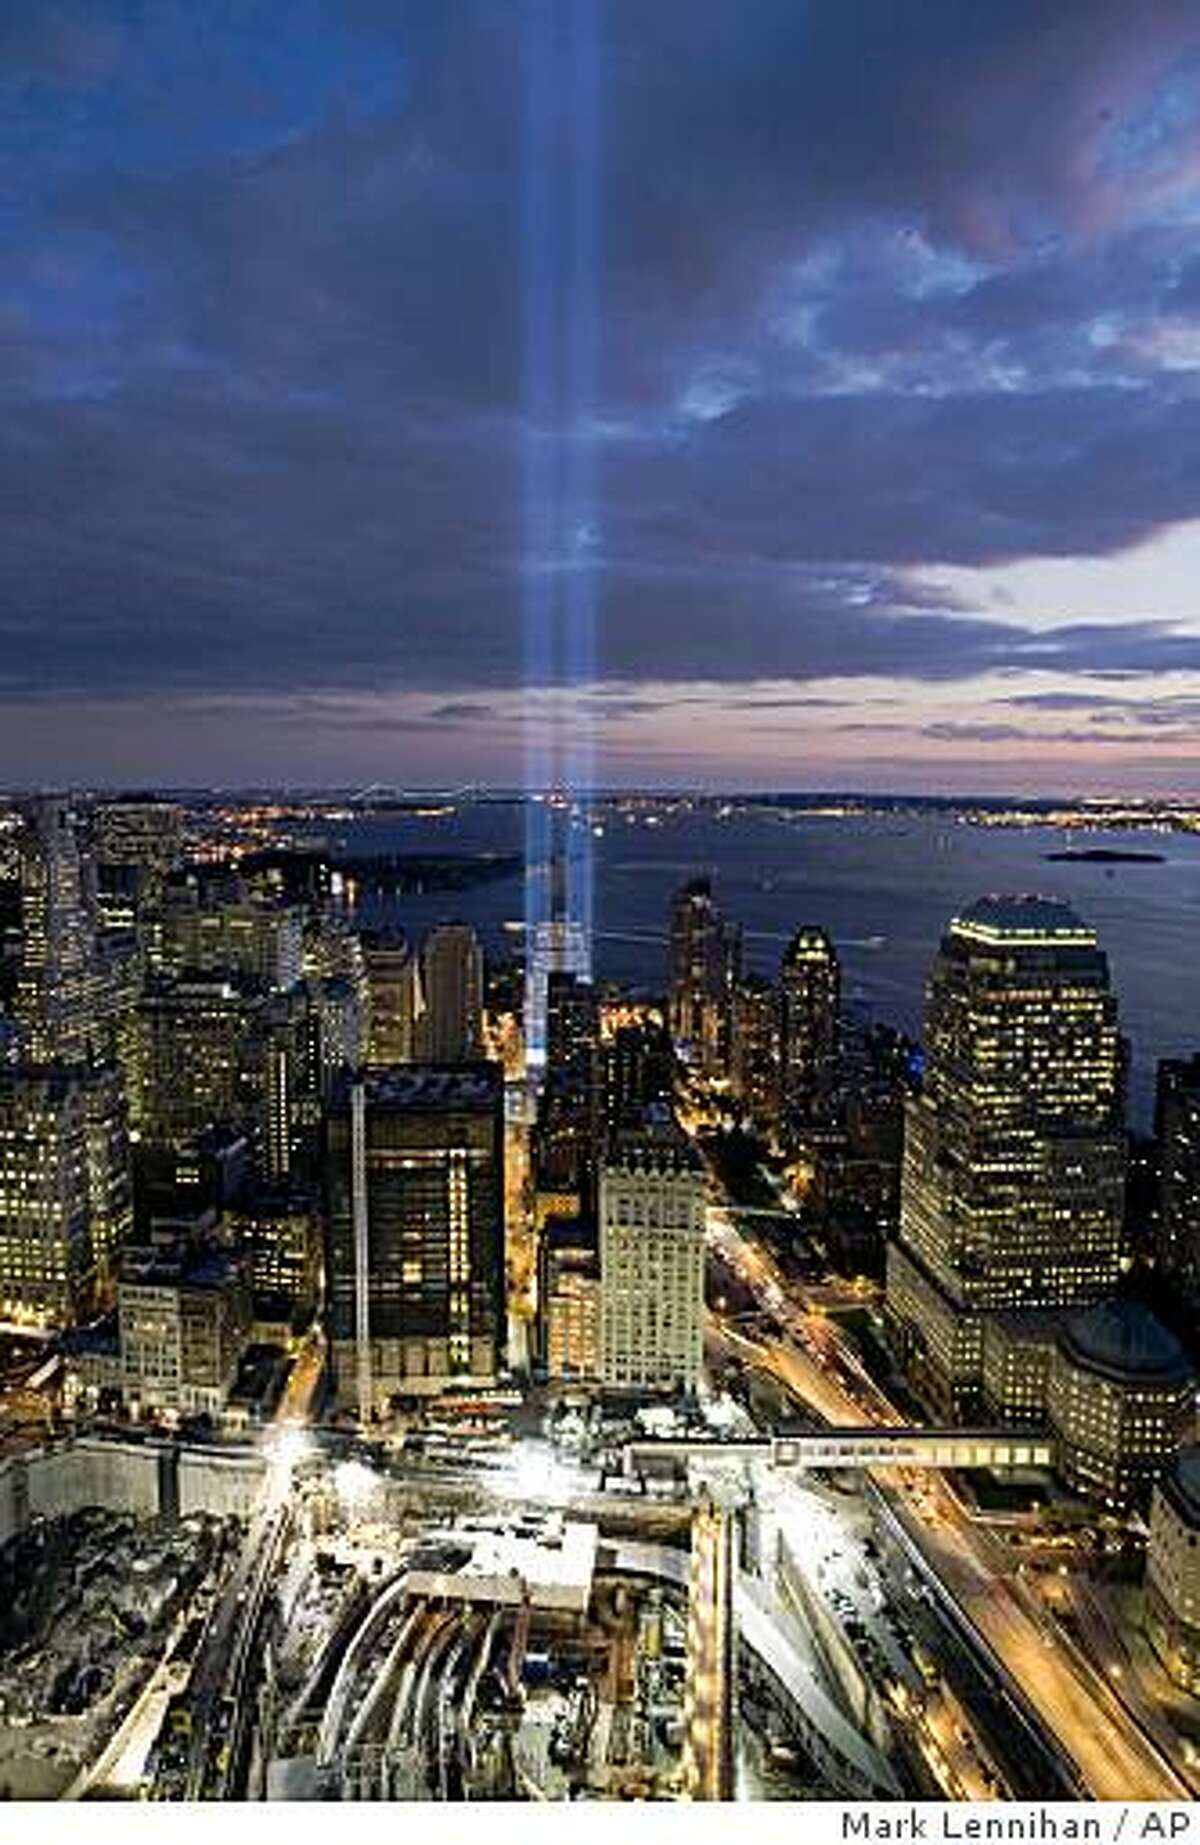 """A short test of the """"Tribute in Light"""" illuminates the sky over the World Trade Center site Wednesday, Sept. 10, 2008 in New York. The Tribute in Light will be turned on for the evening of Thursday, Sept. 11, in honor of those who lost their lives seven years ago in the terrorist attacks on the United States. (AP Photo/Mark Lennihan)"""